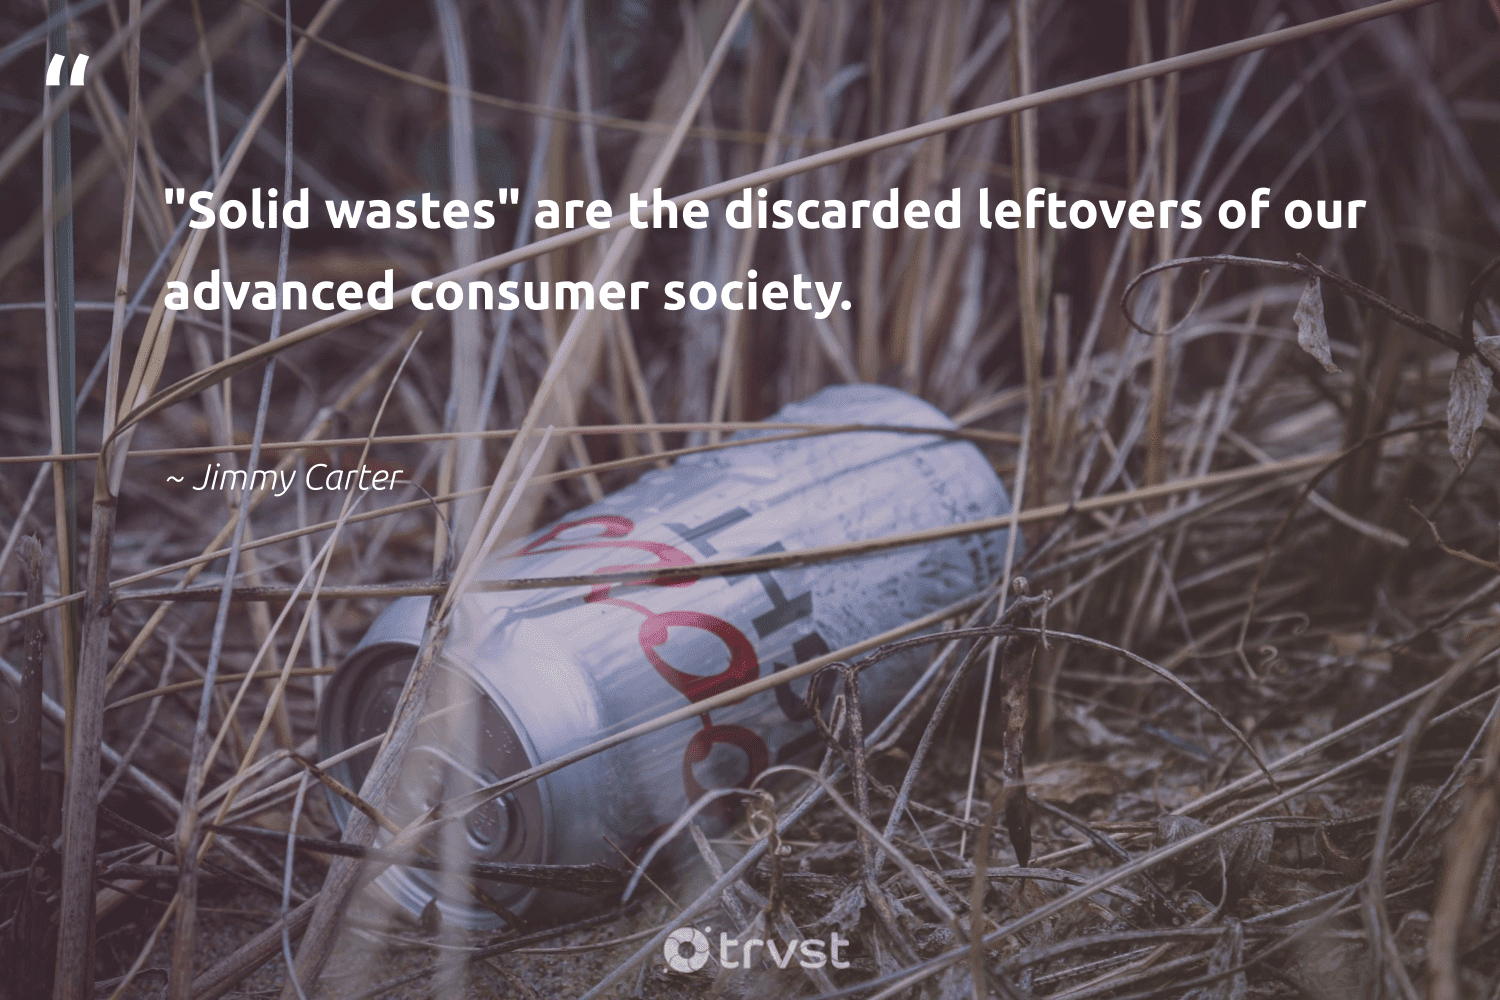 """""""'Solid wastes' are the discarded leftovers of our advanced consumer society.""""  - Jimmy Carter #trvst #quotes #society #planetearthfirst #bethechange #ecoactivism #dosomething #earthdayeveryday #socialchange #sustainability #gogreen #ecofriendly"""